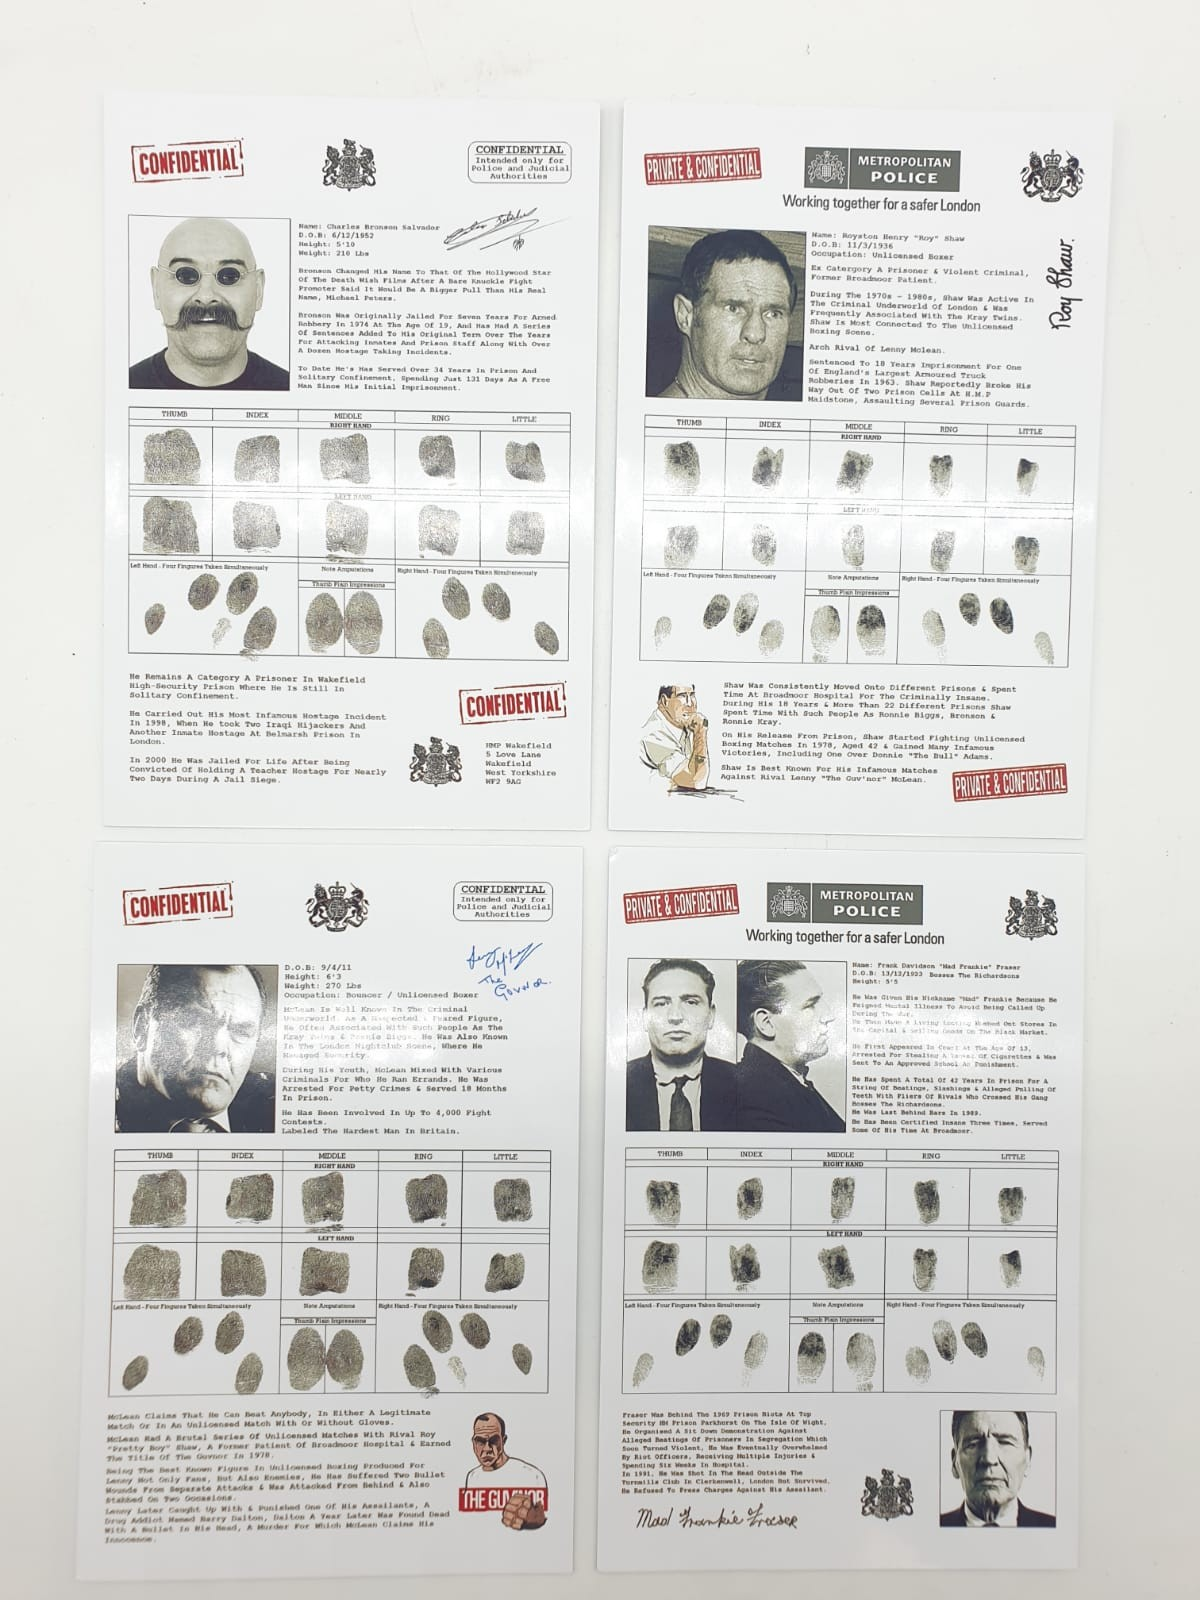 City of London police confidential records for Freddie Foreman, Frankie Fraser, Ronnie Biggs, The - Image 2 of 2